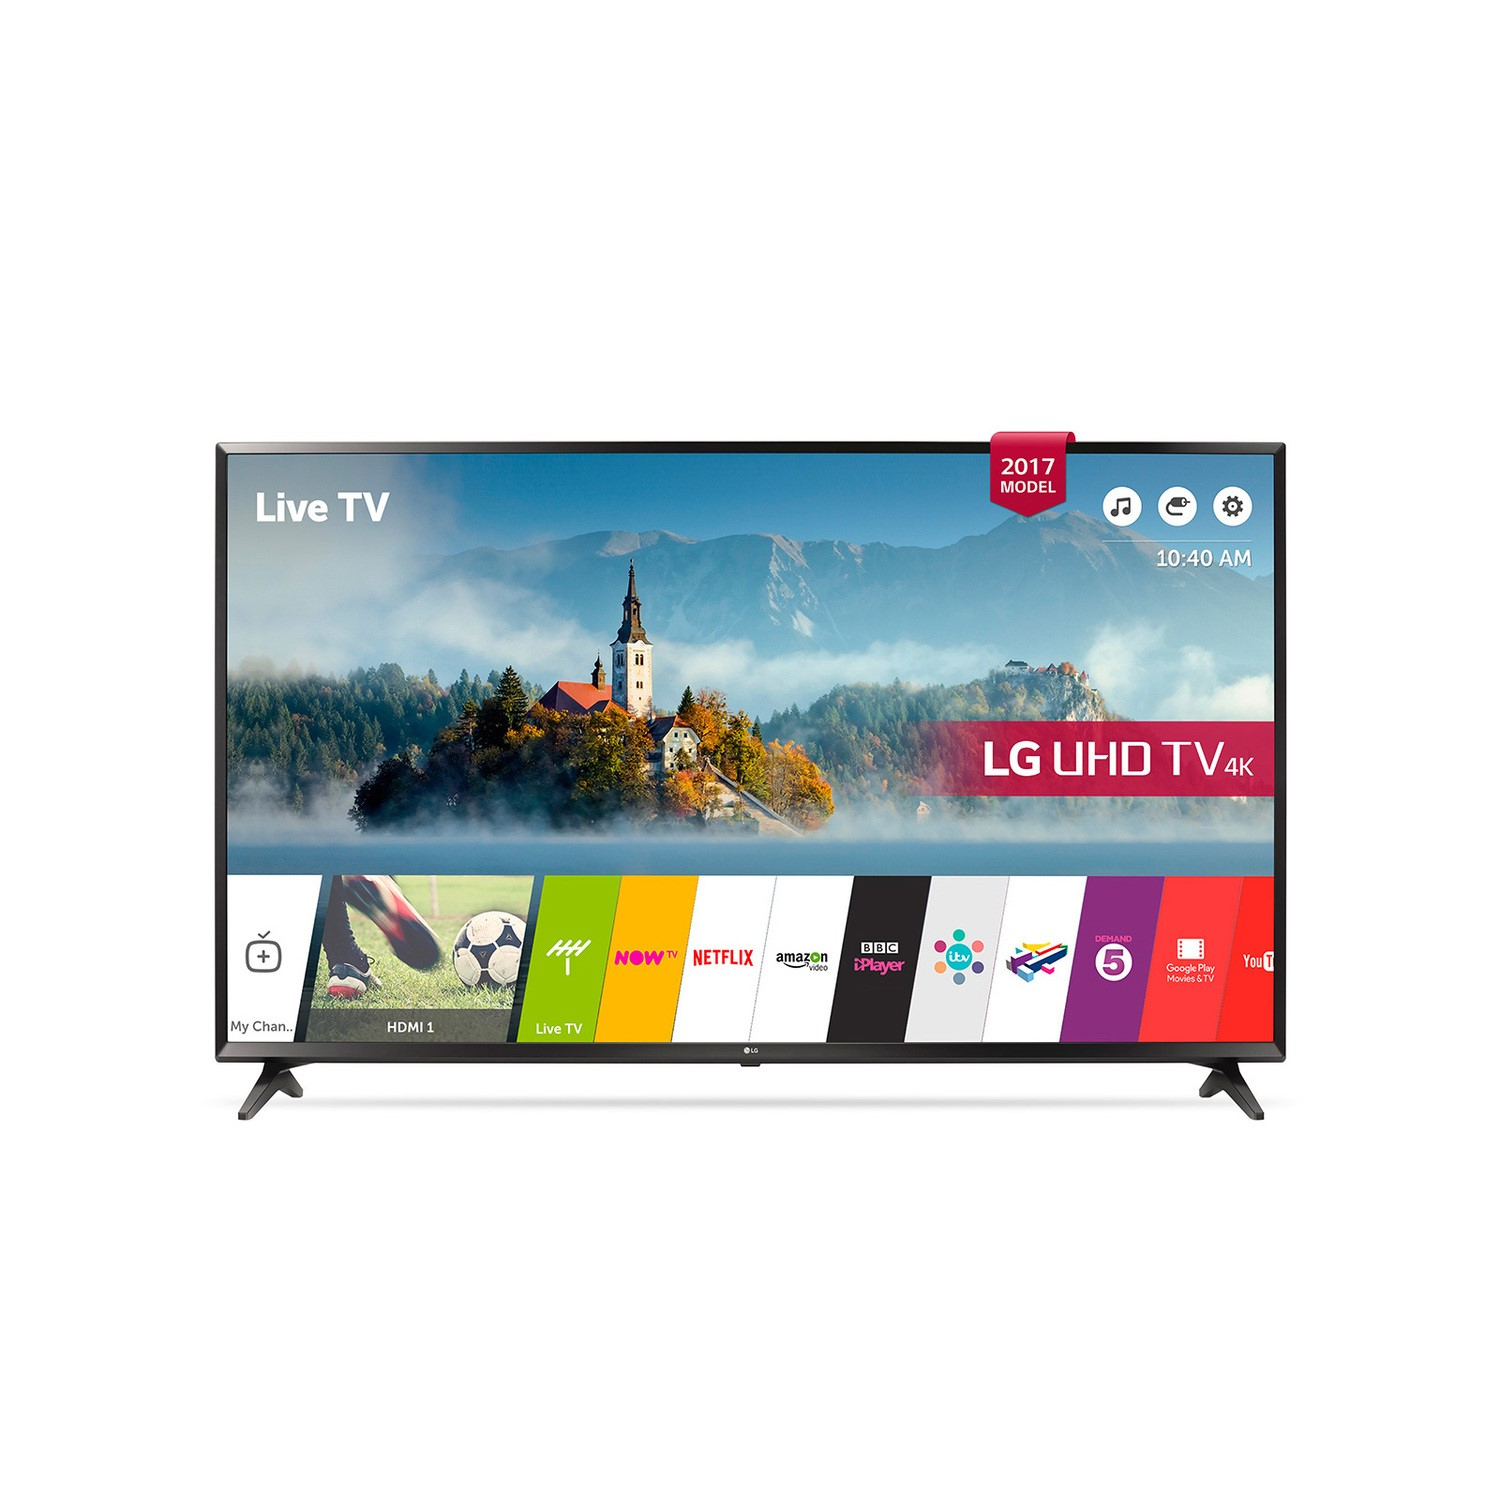 lg 43uj630v 43 4k ultra hd hdr led smart tv with freeview play rh laptopsdirect co uk lg tv manual tuning lg tv manuals online